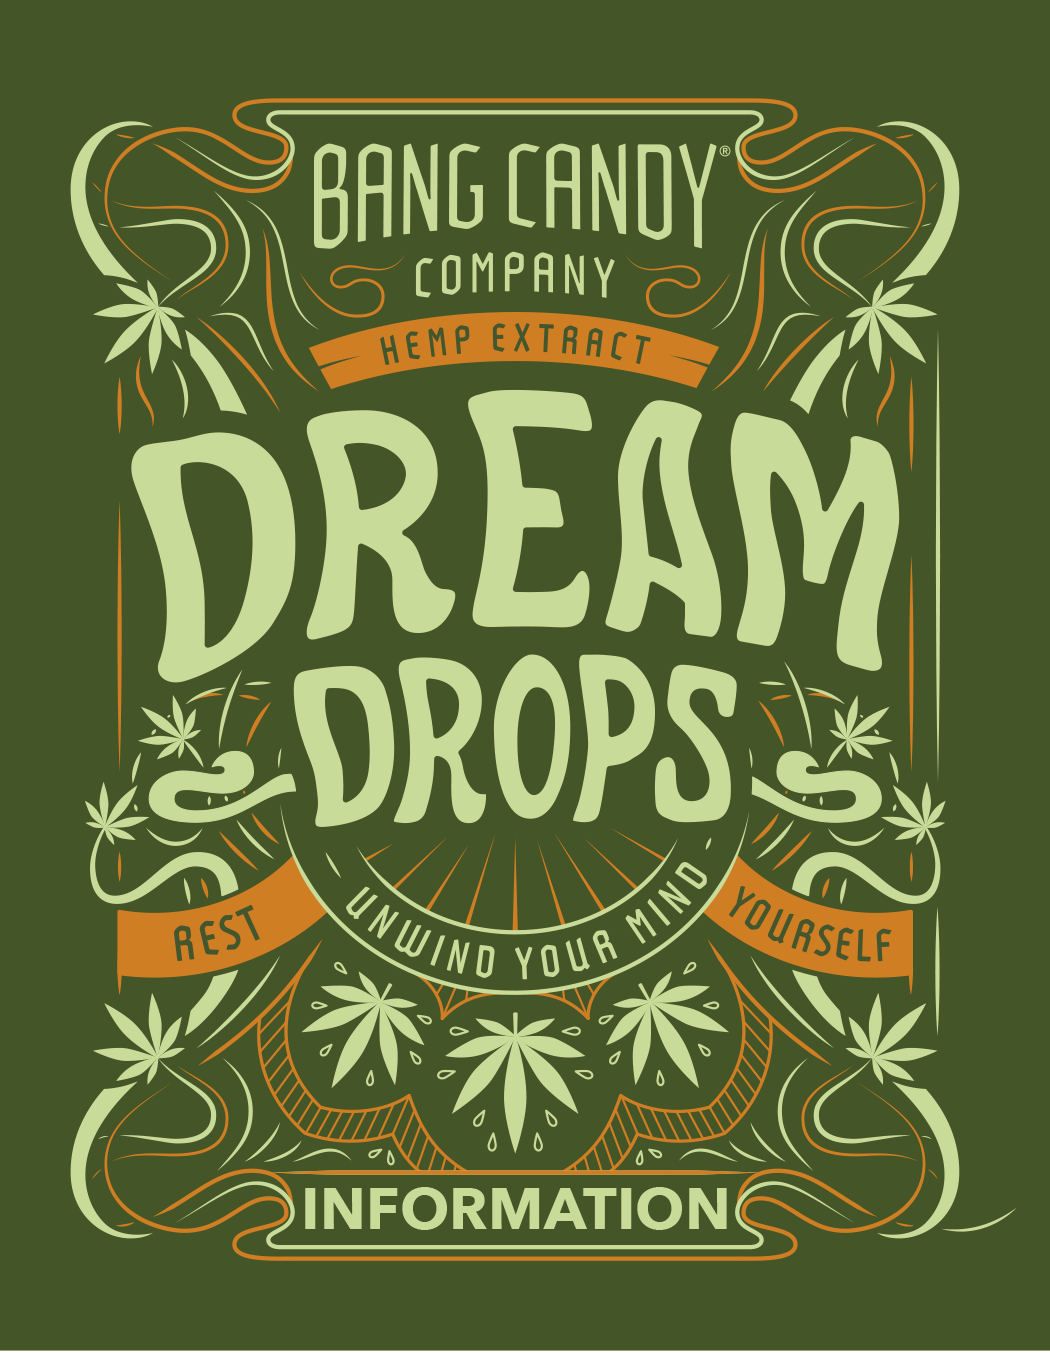 CBD Dream Drops Artwork